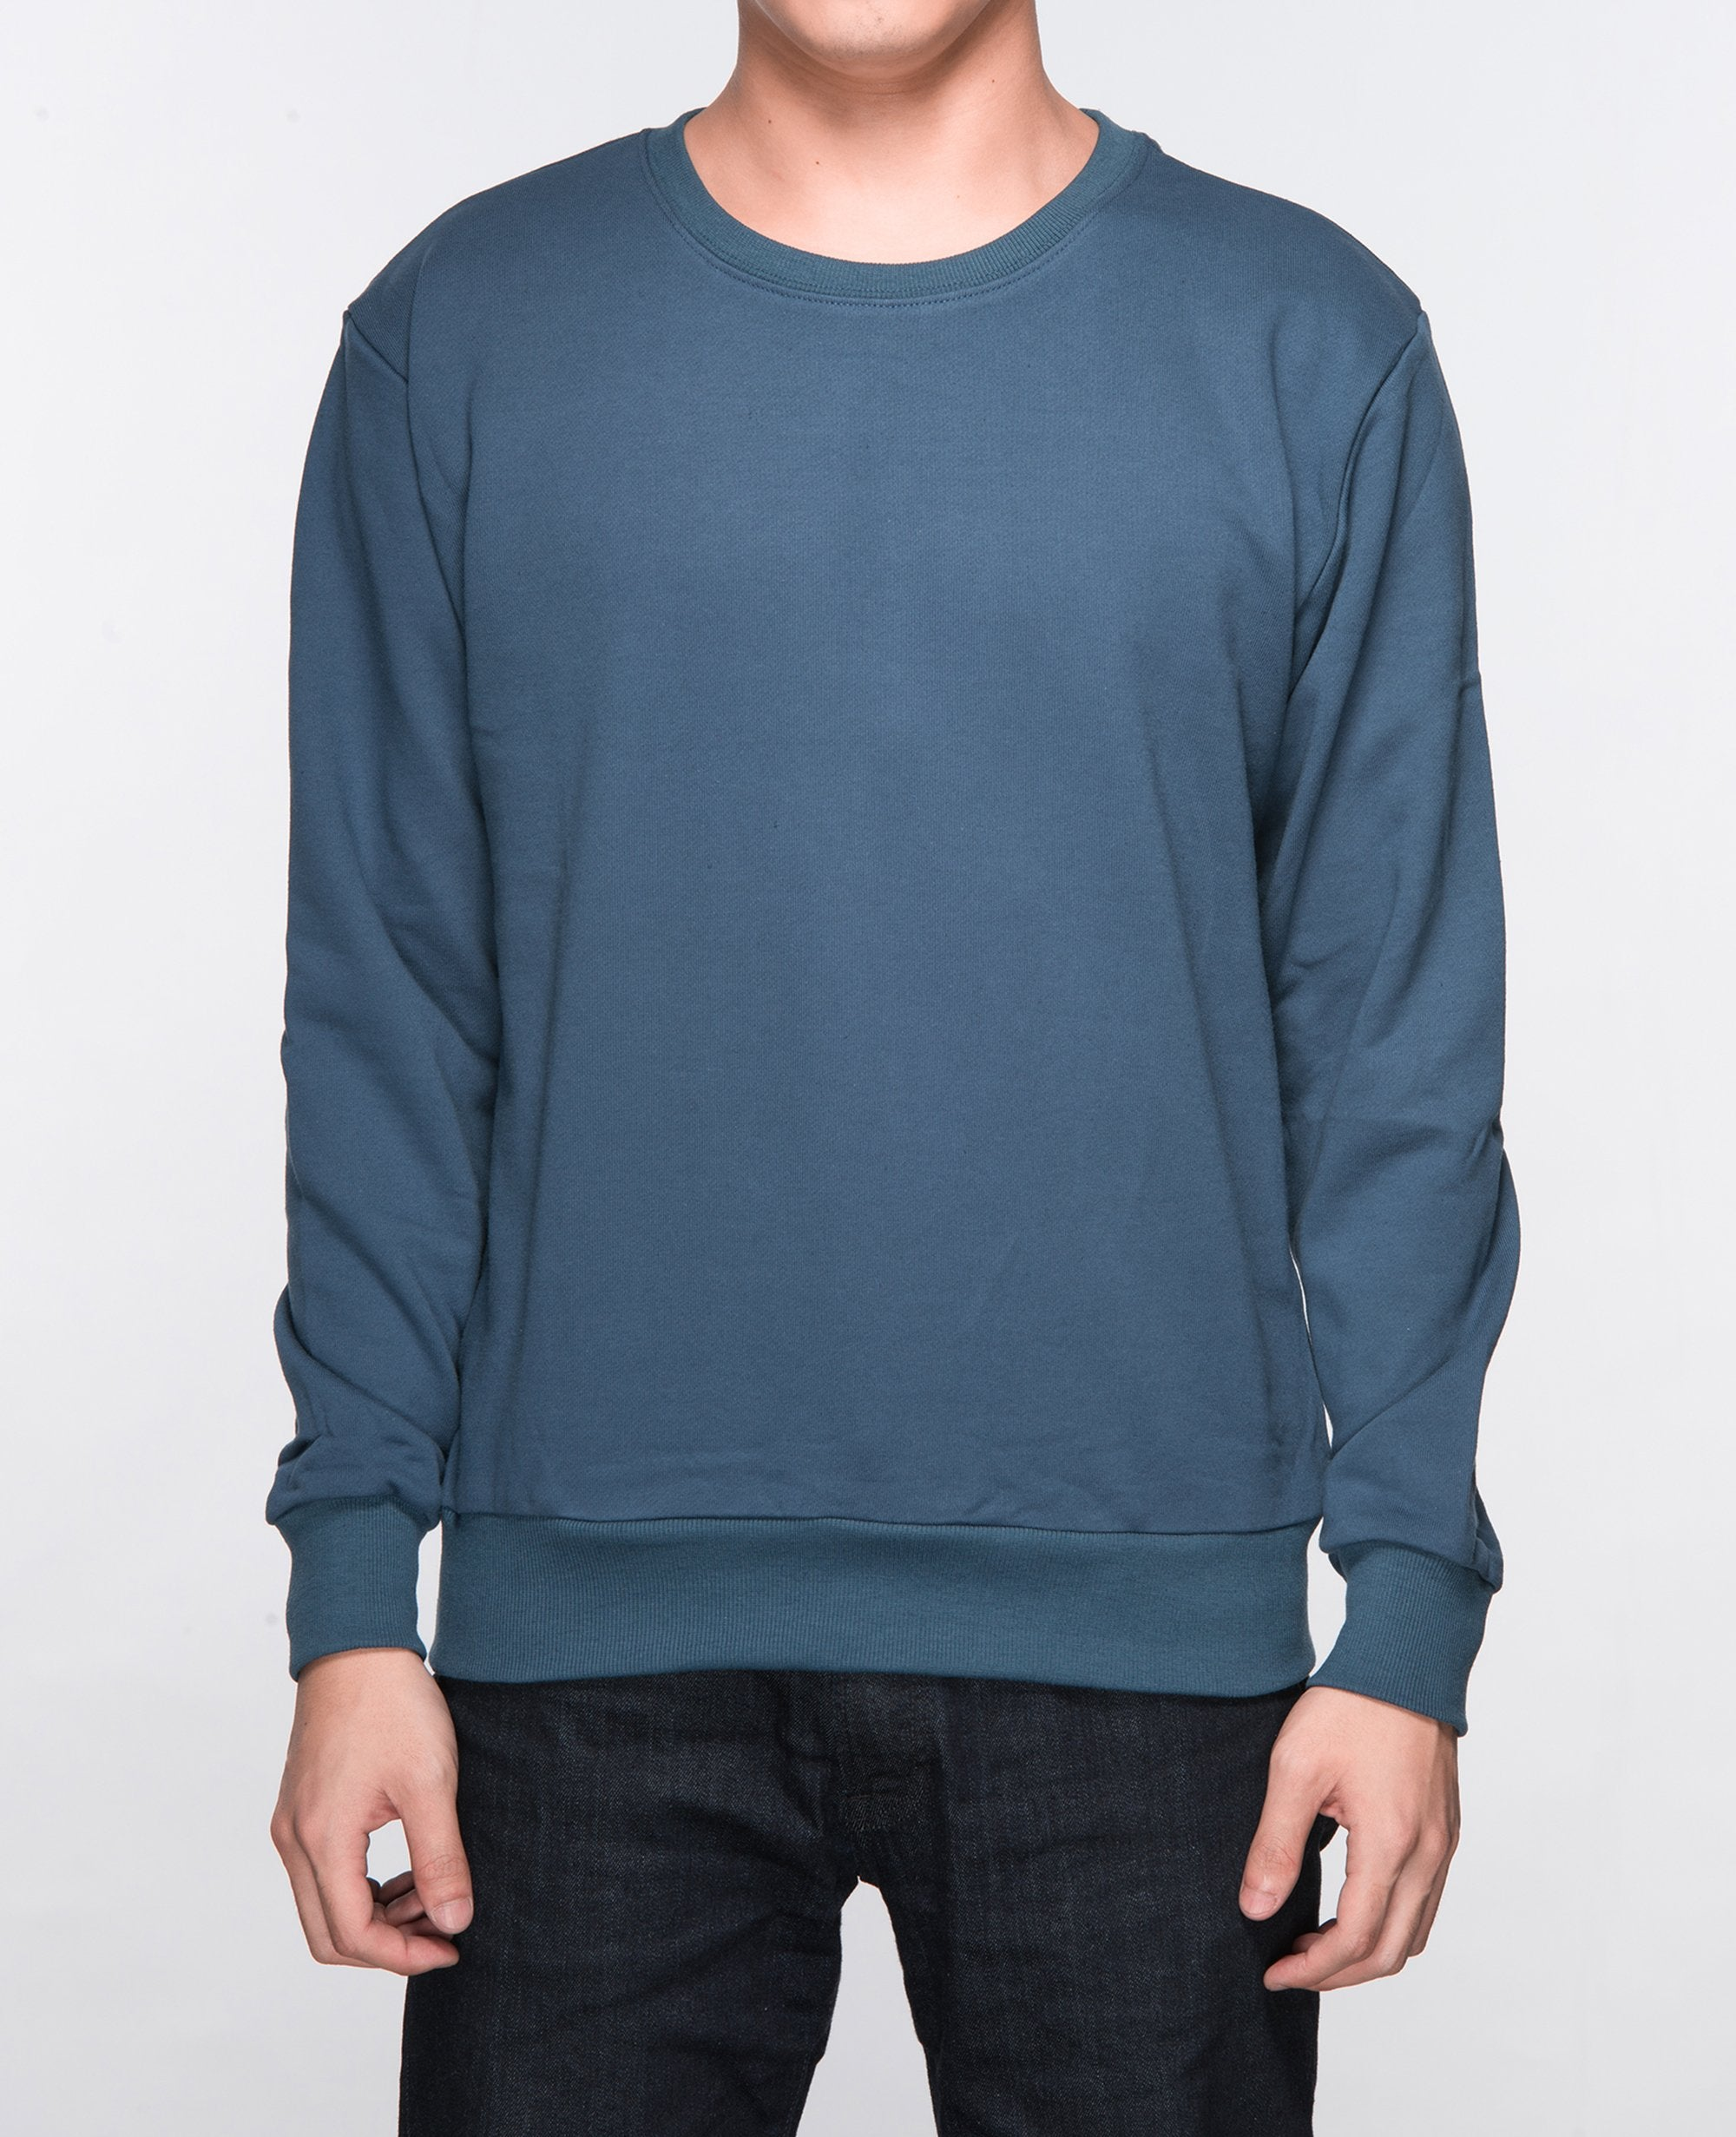 Unisex Basic Sweatshirt in Navy - Sweater - BRANMA - BRANMA